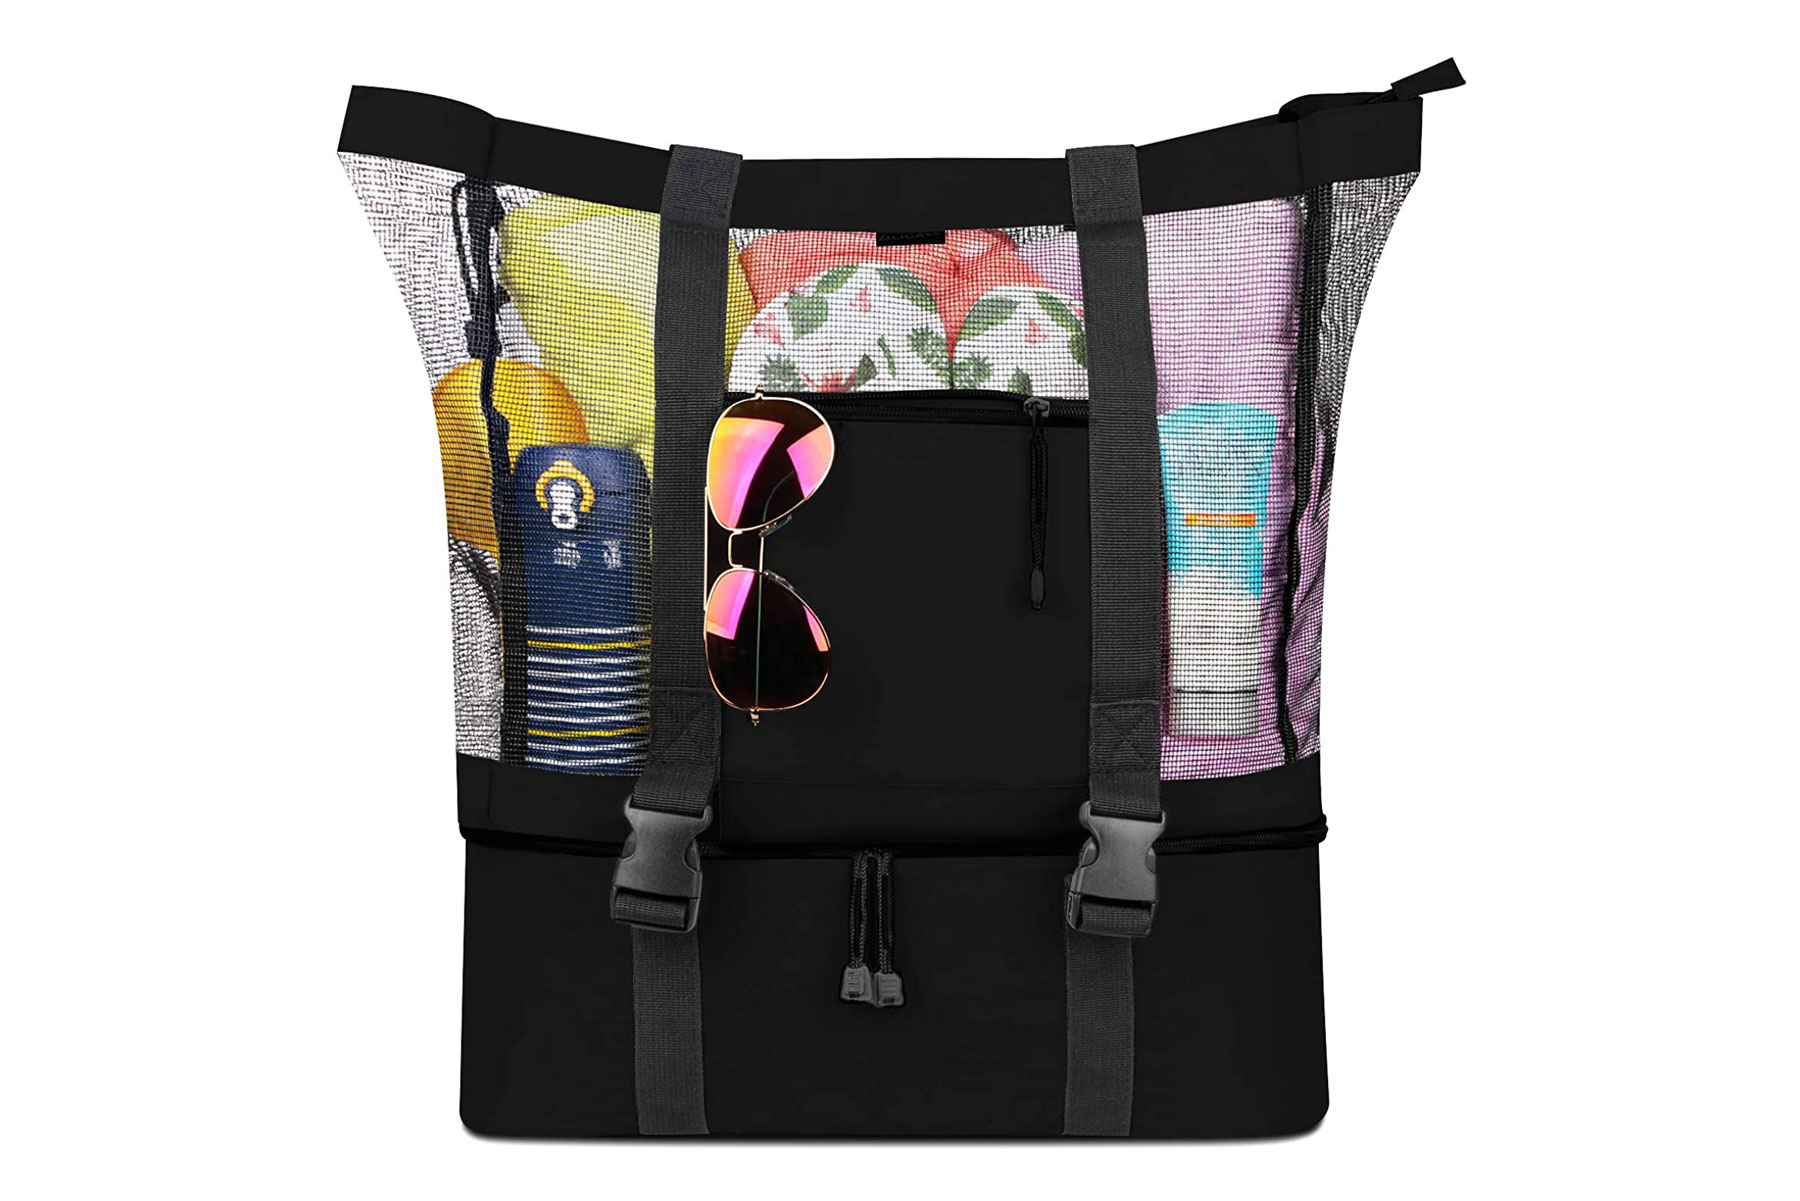 Black mesh beach tote and cooler